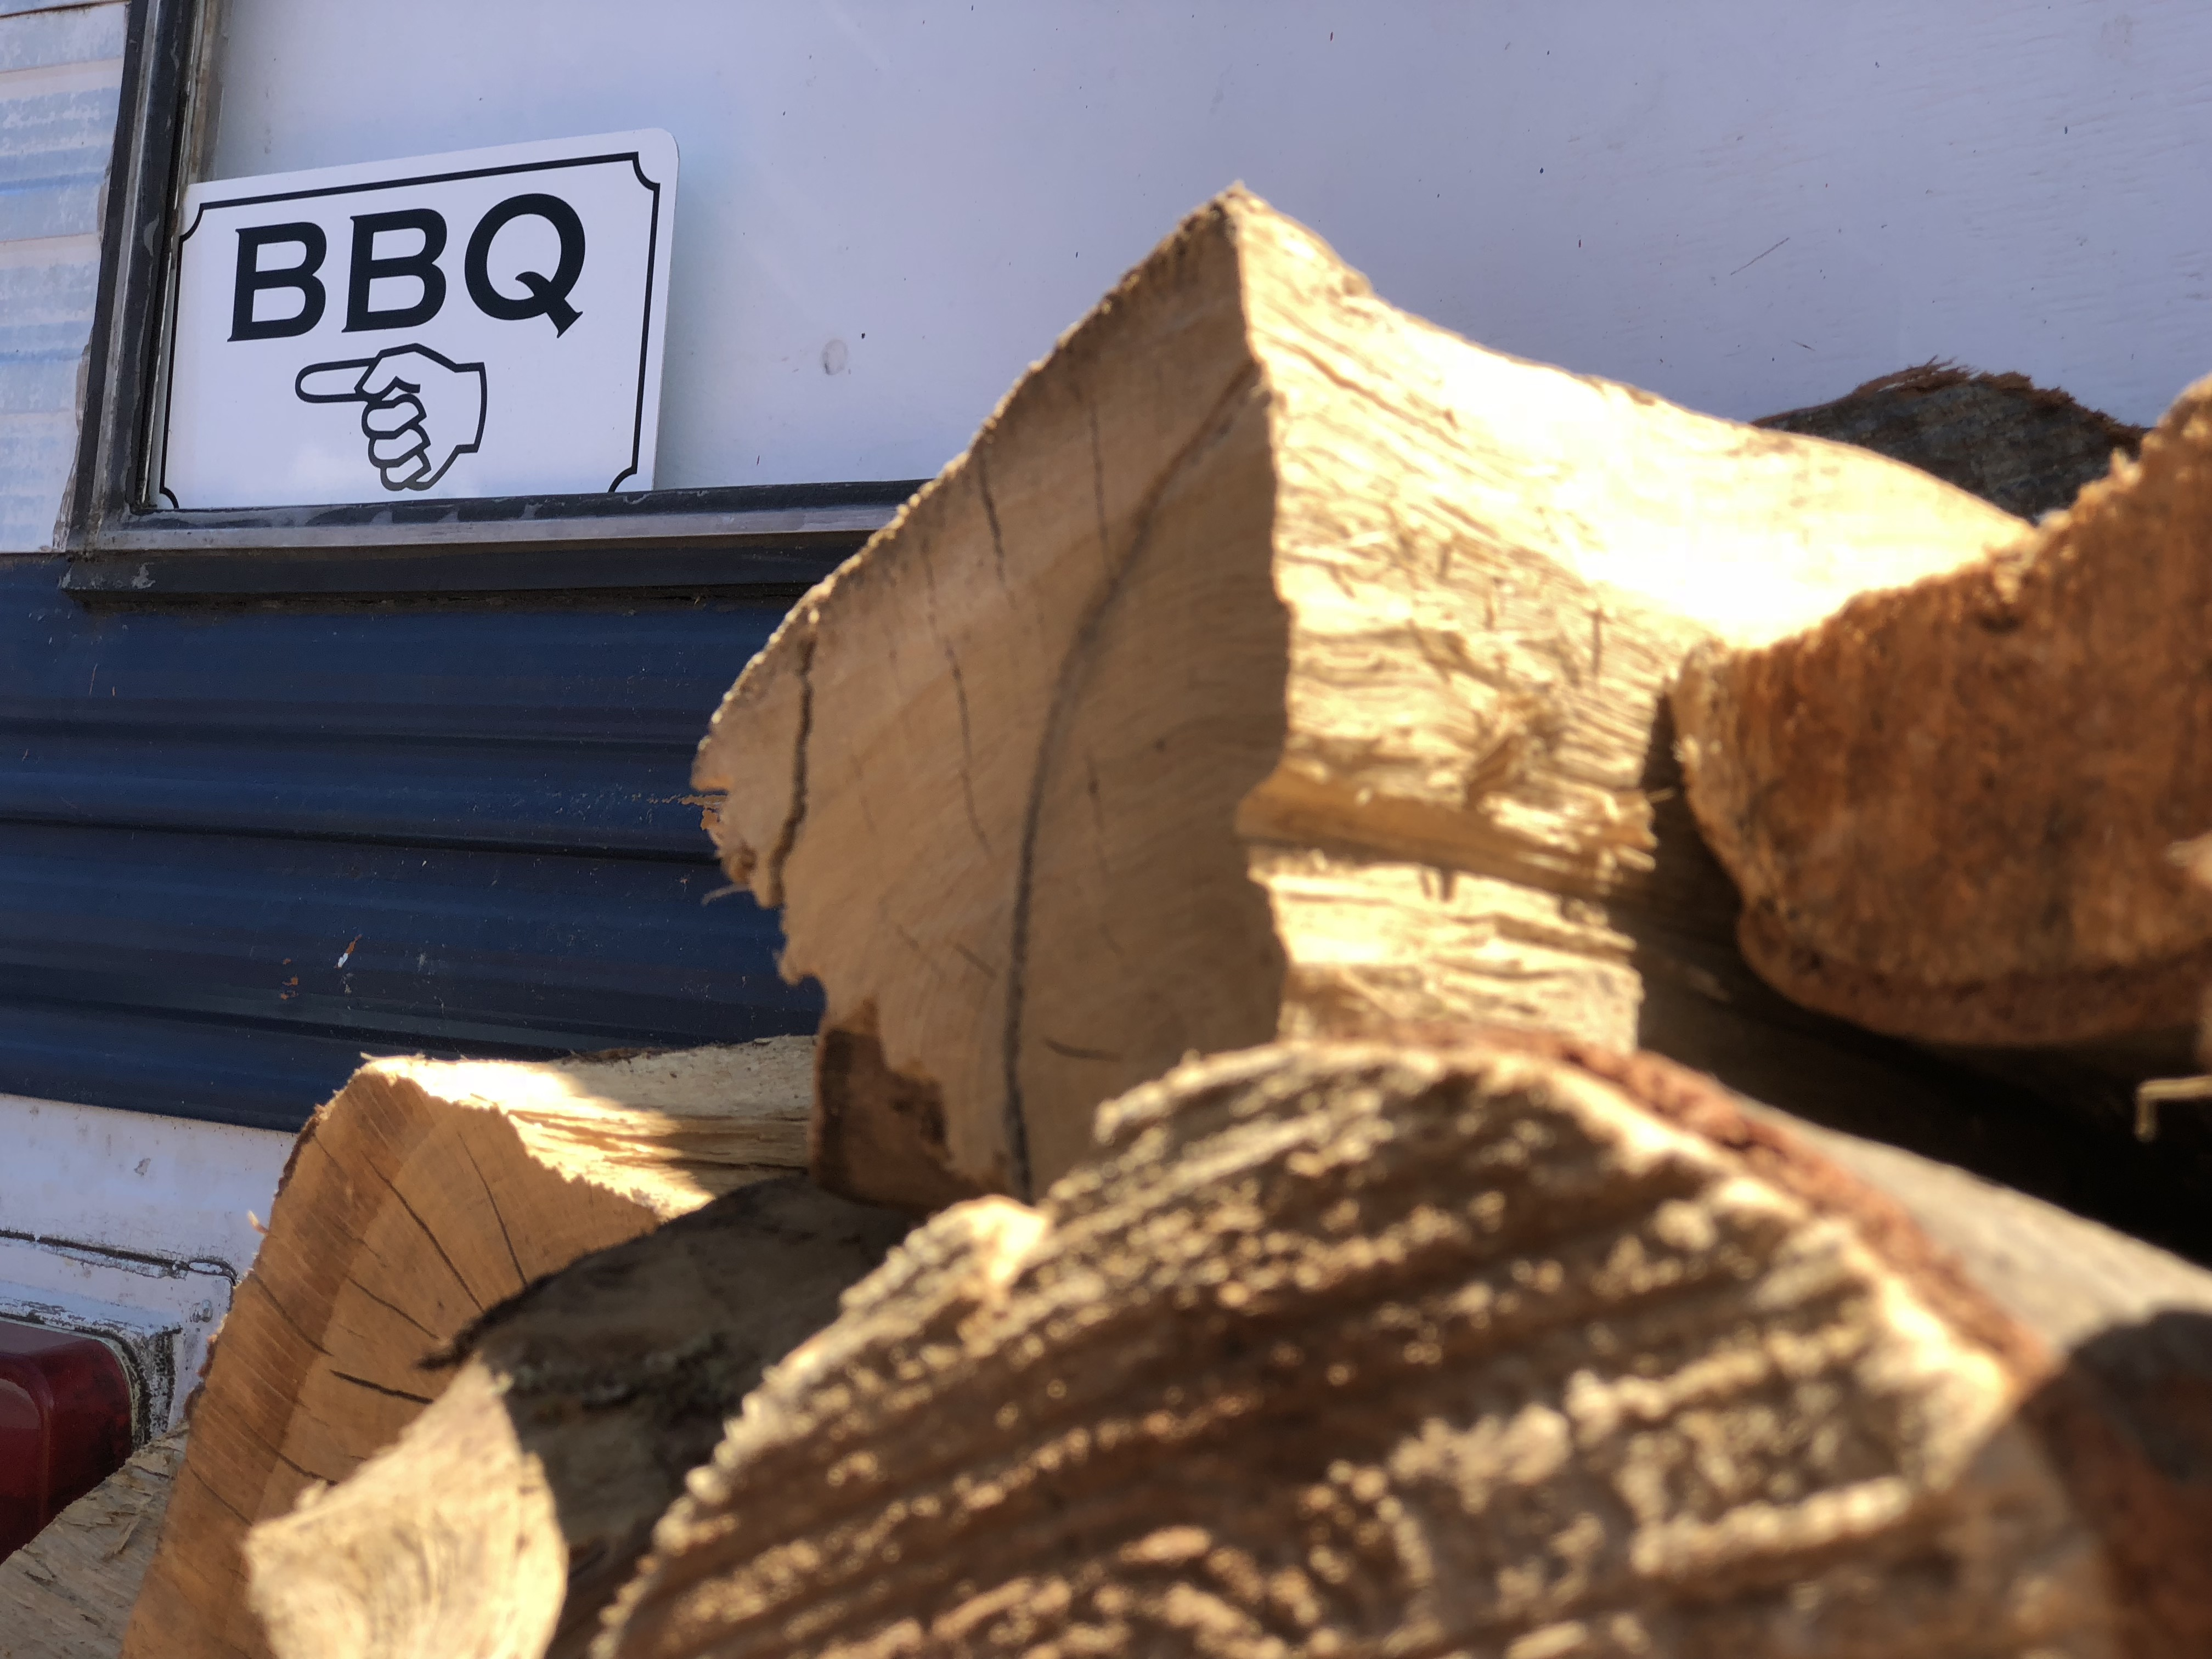 Matt's BBQ wood pile. Photo by Stover Harger.